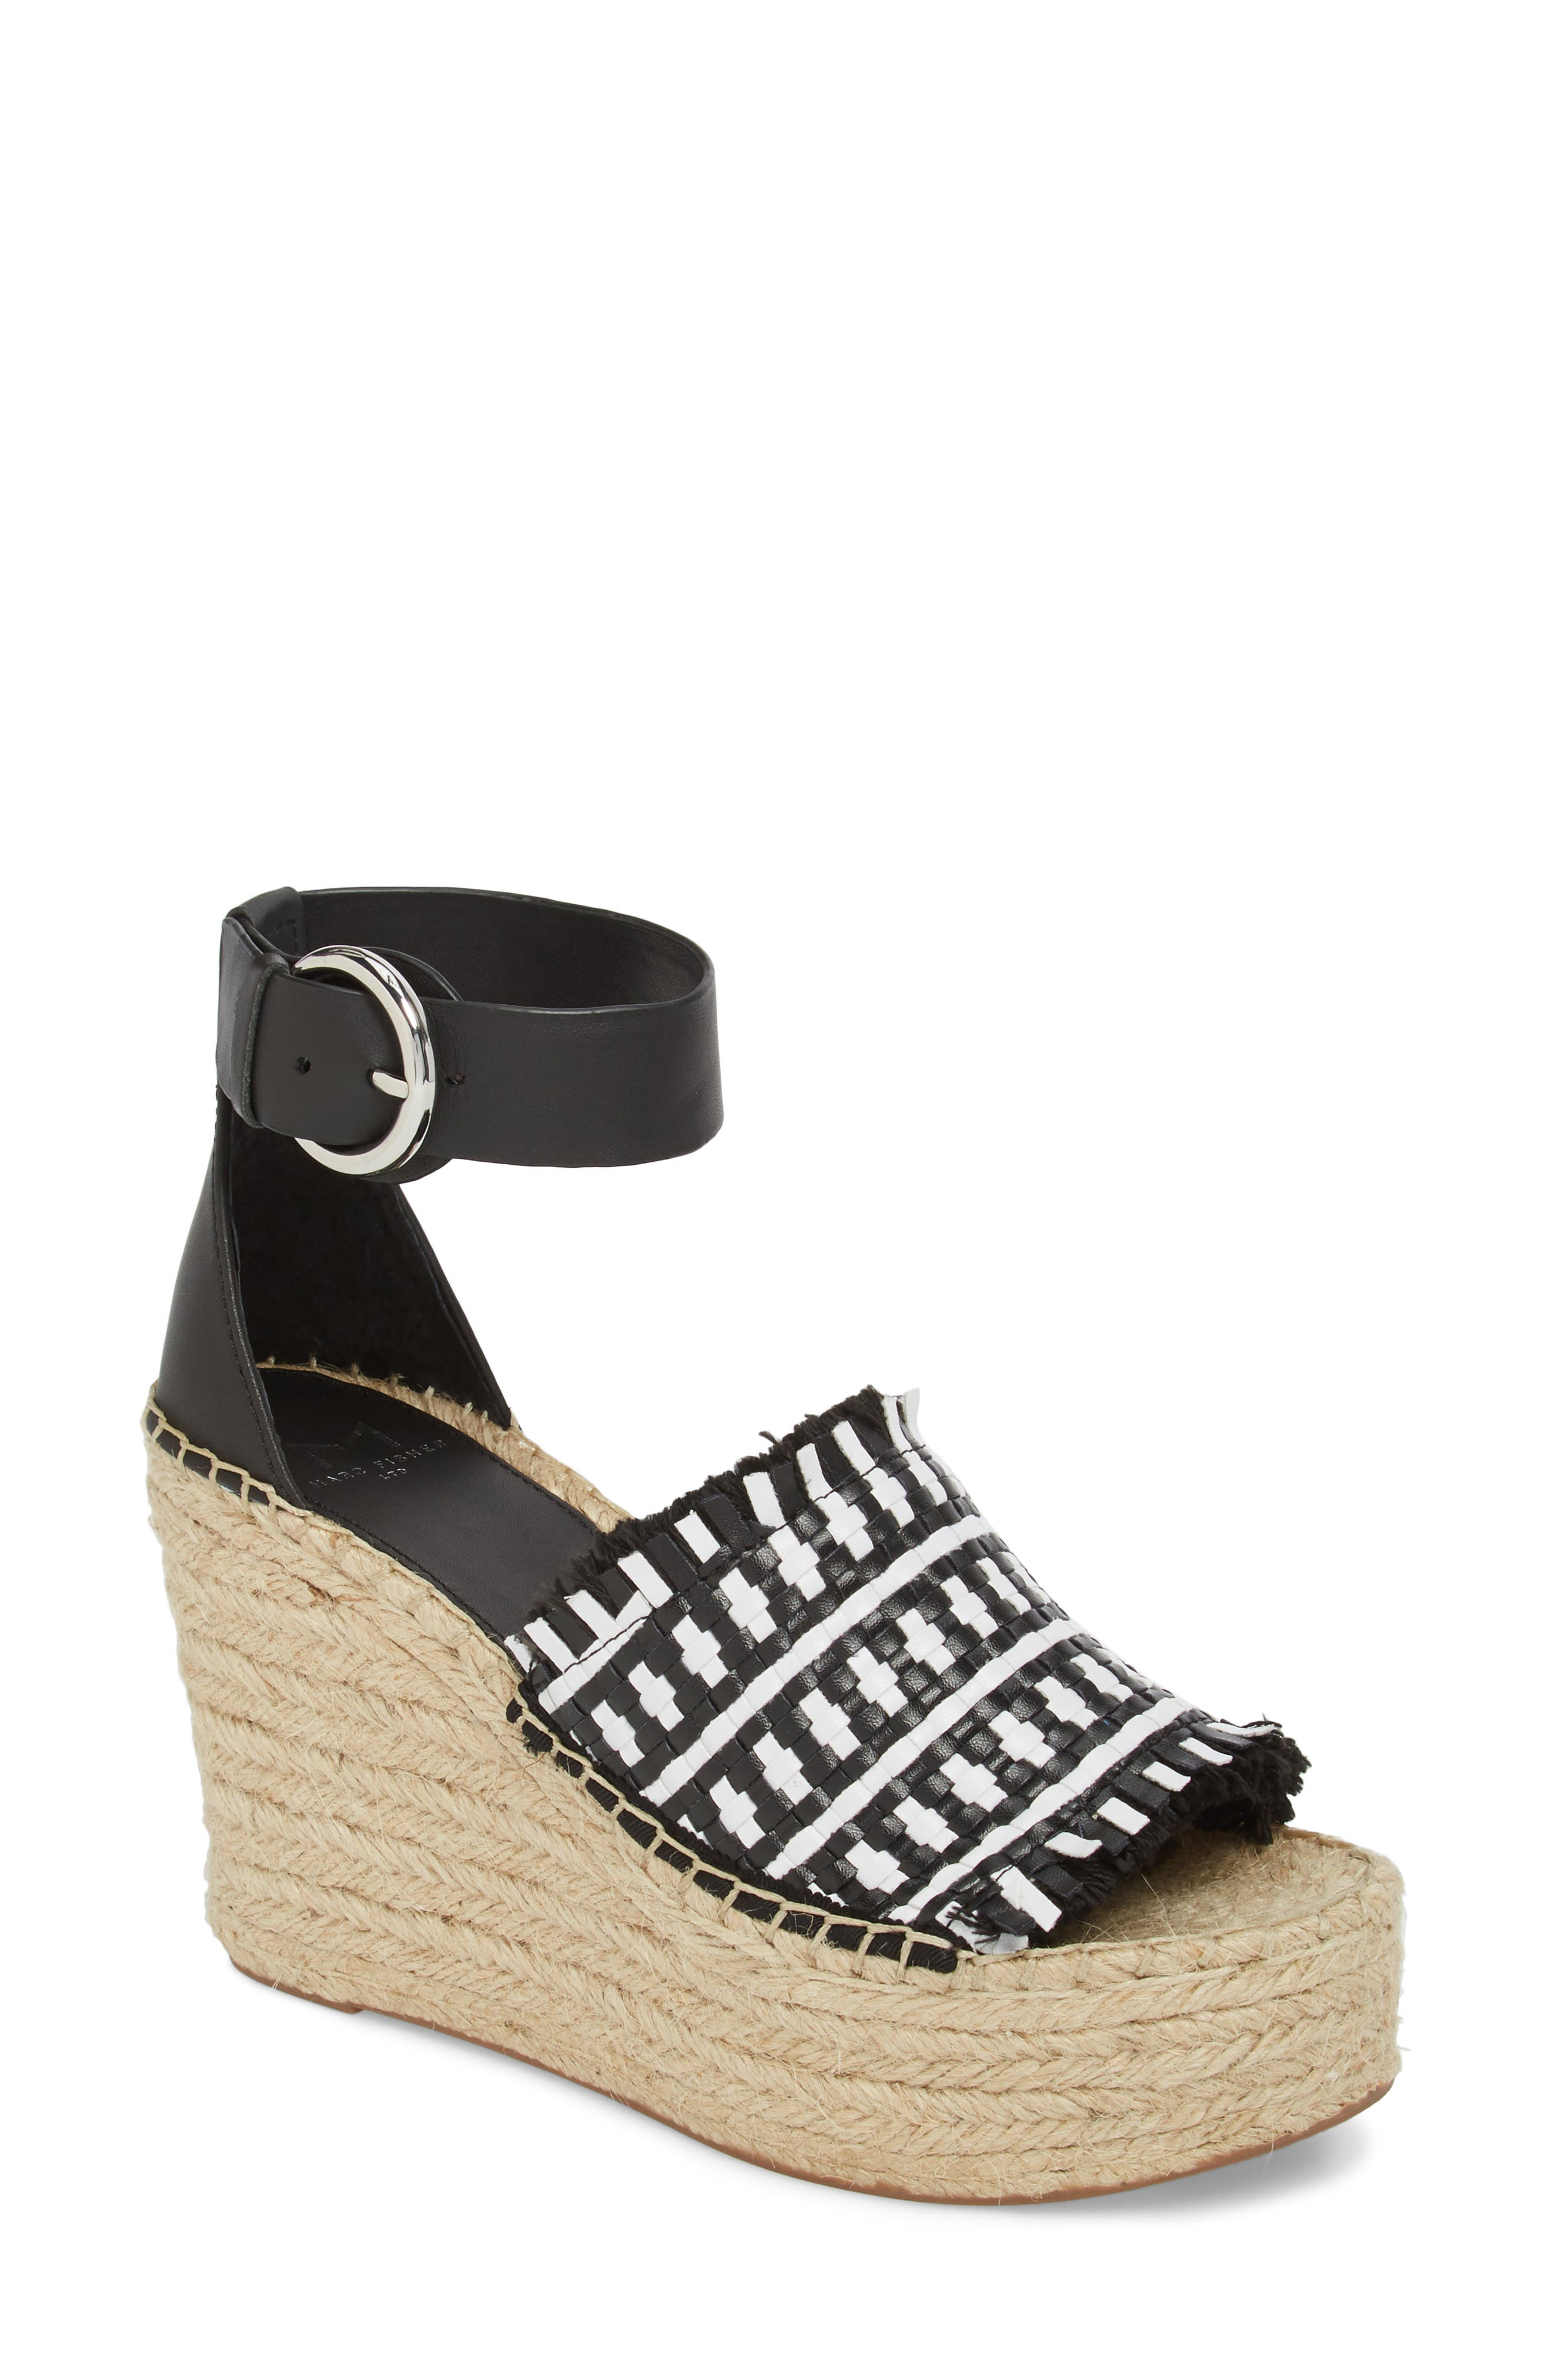 Andrew Espadrille Wedge Sandal,                             Main thumbnail 1, color,                             100